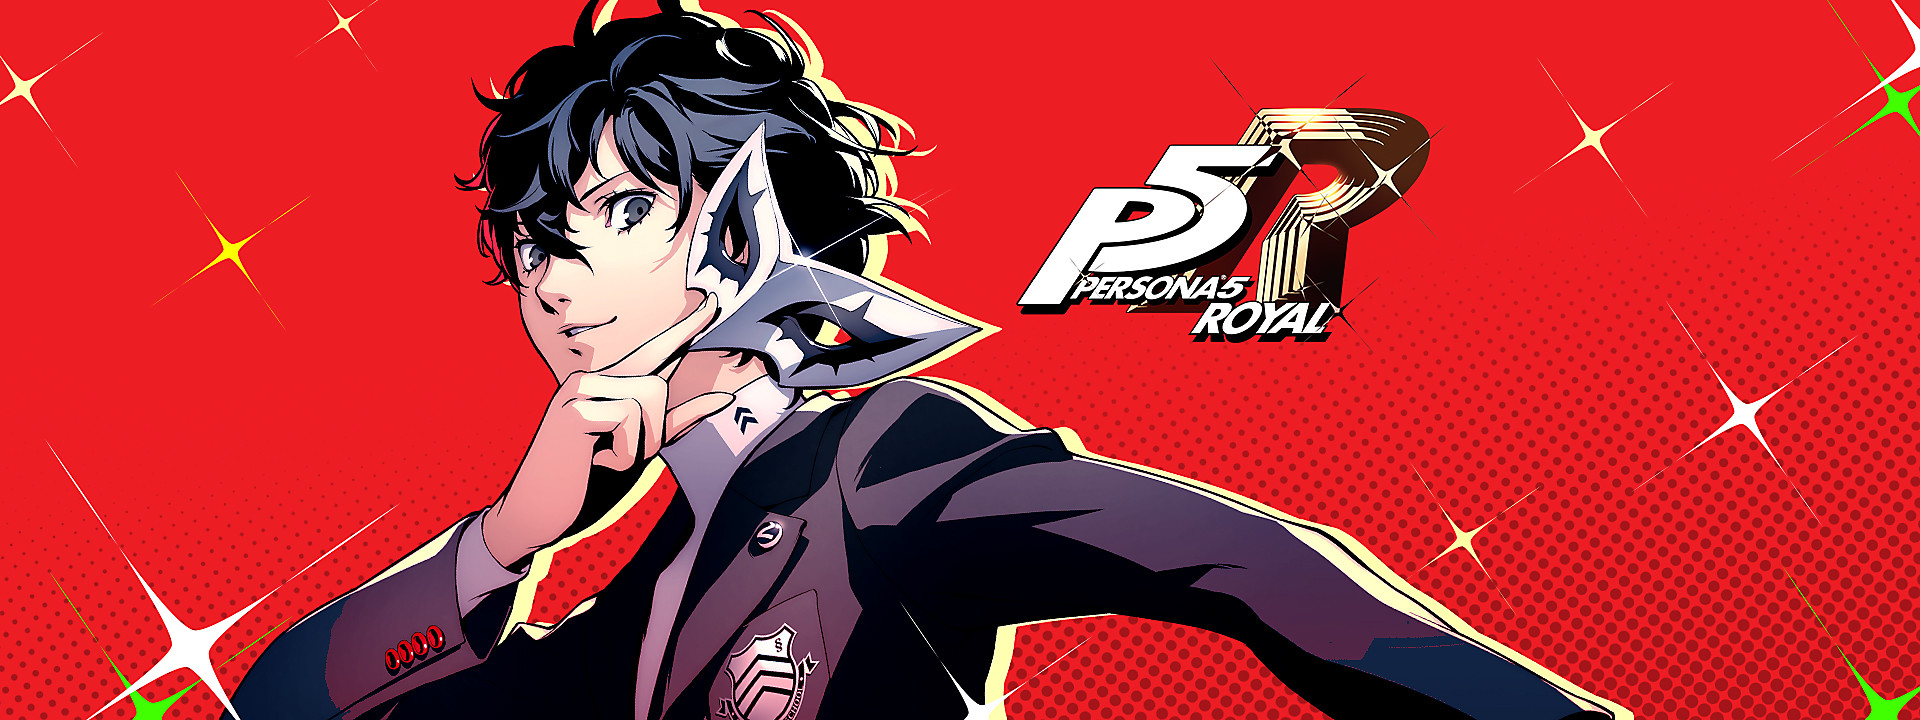 Persona 5 Royal - Morgana's Phantom Thieves Crash Course